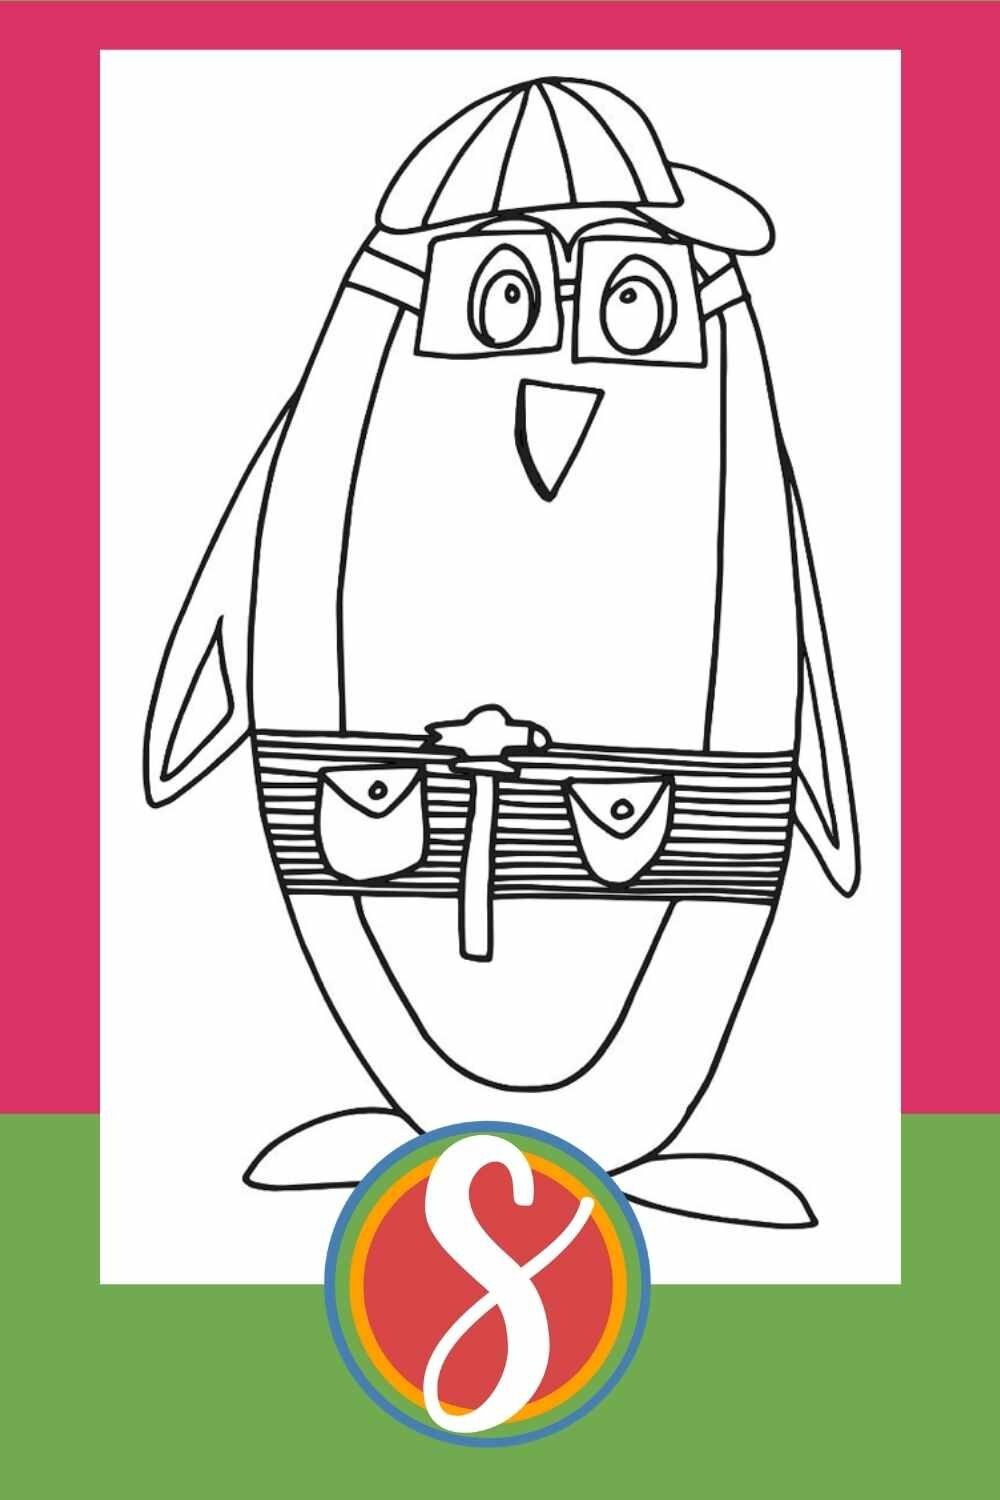 Construction Penguin - one of 30+ free penguin coloring pages from Stevie Doodles